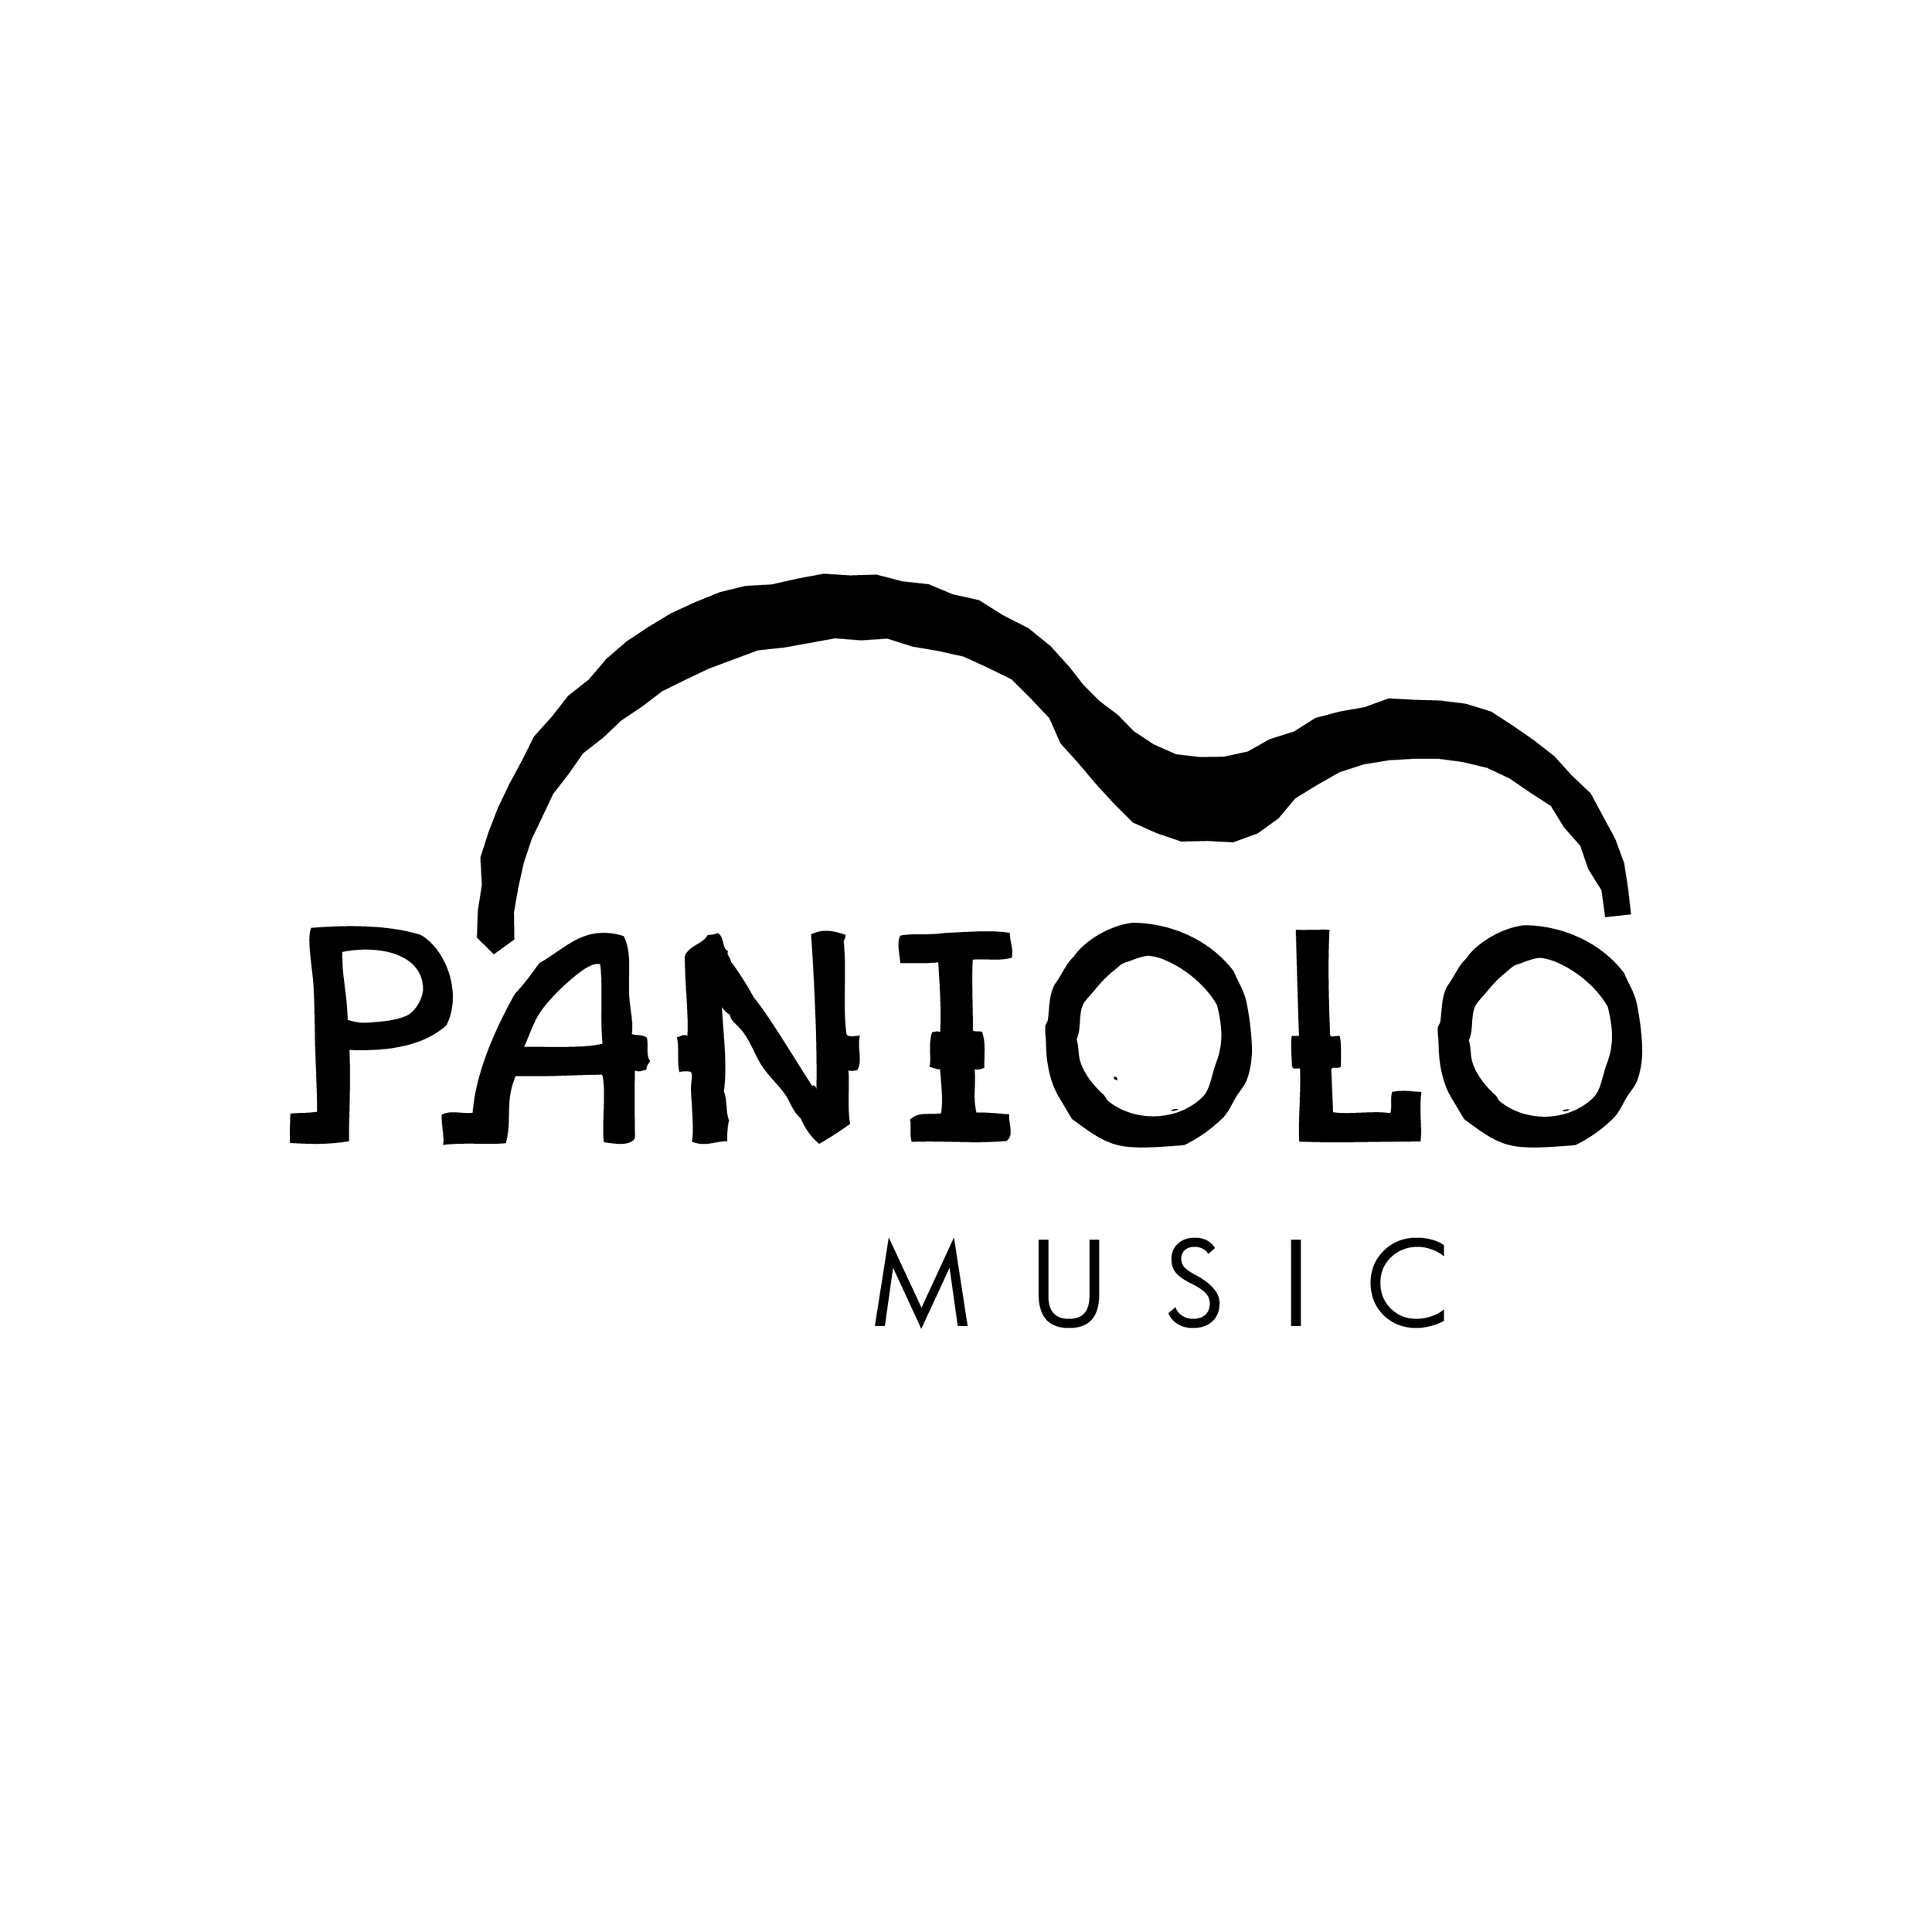 Paniolo Music Logo Design